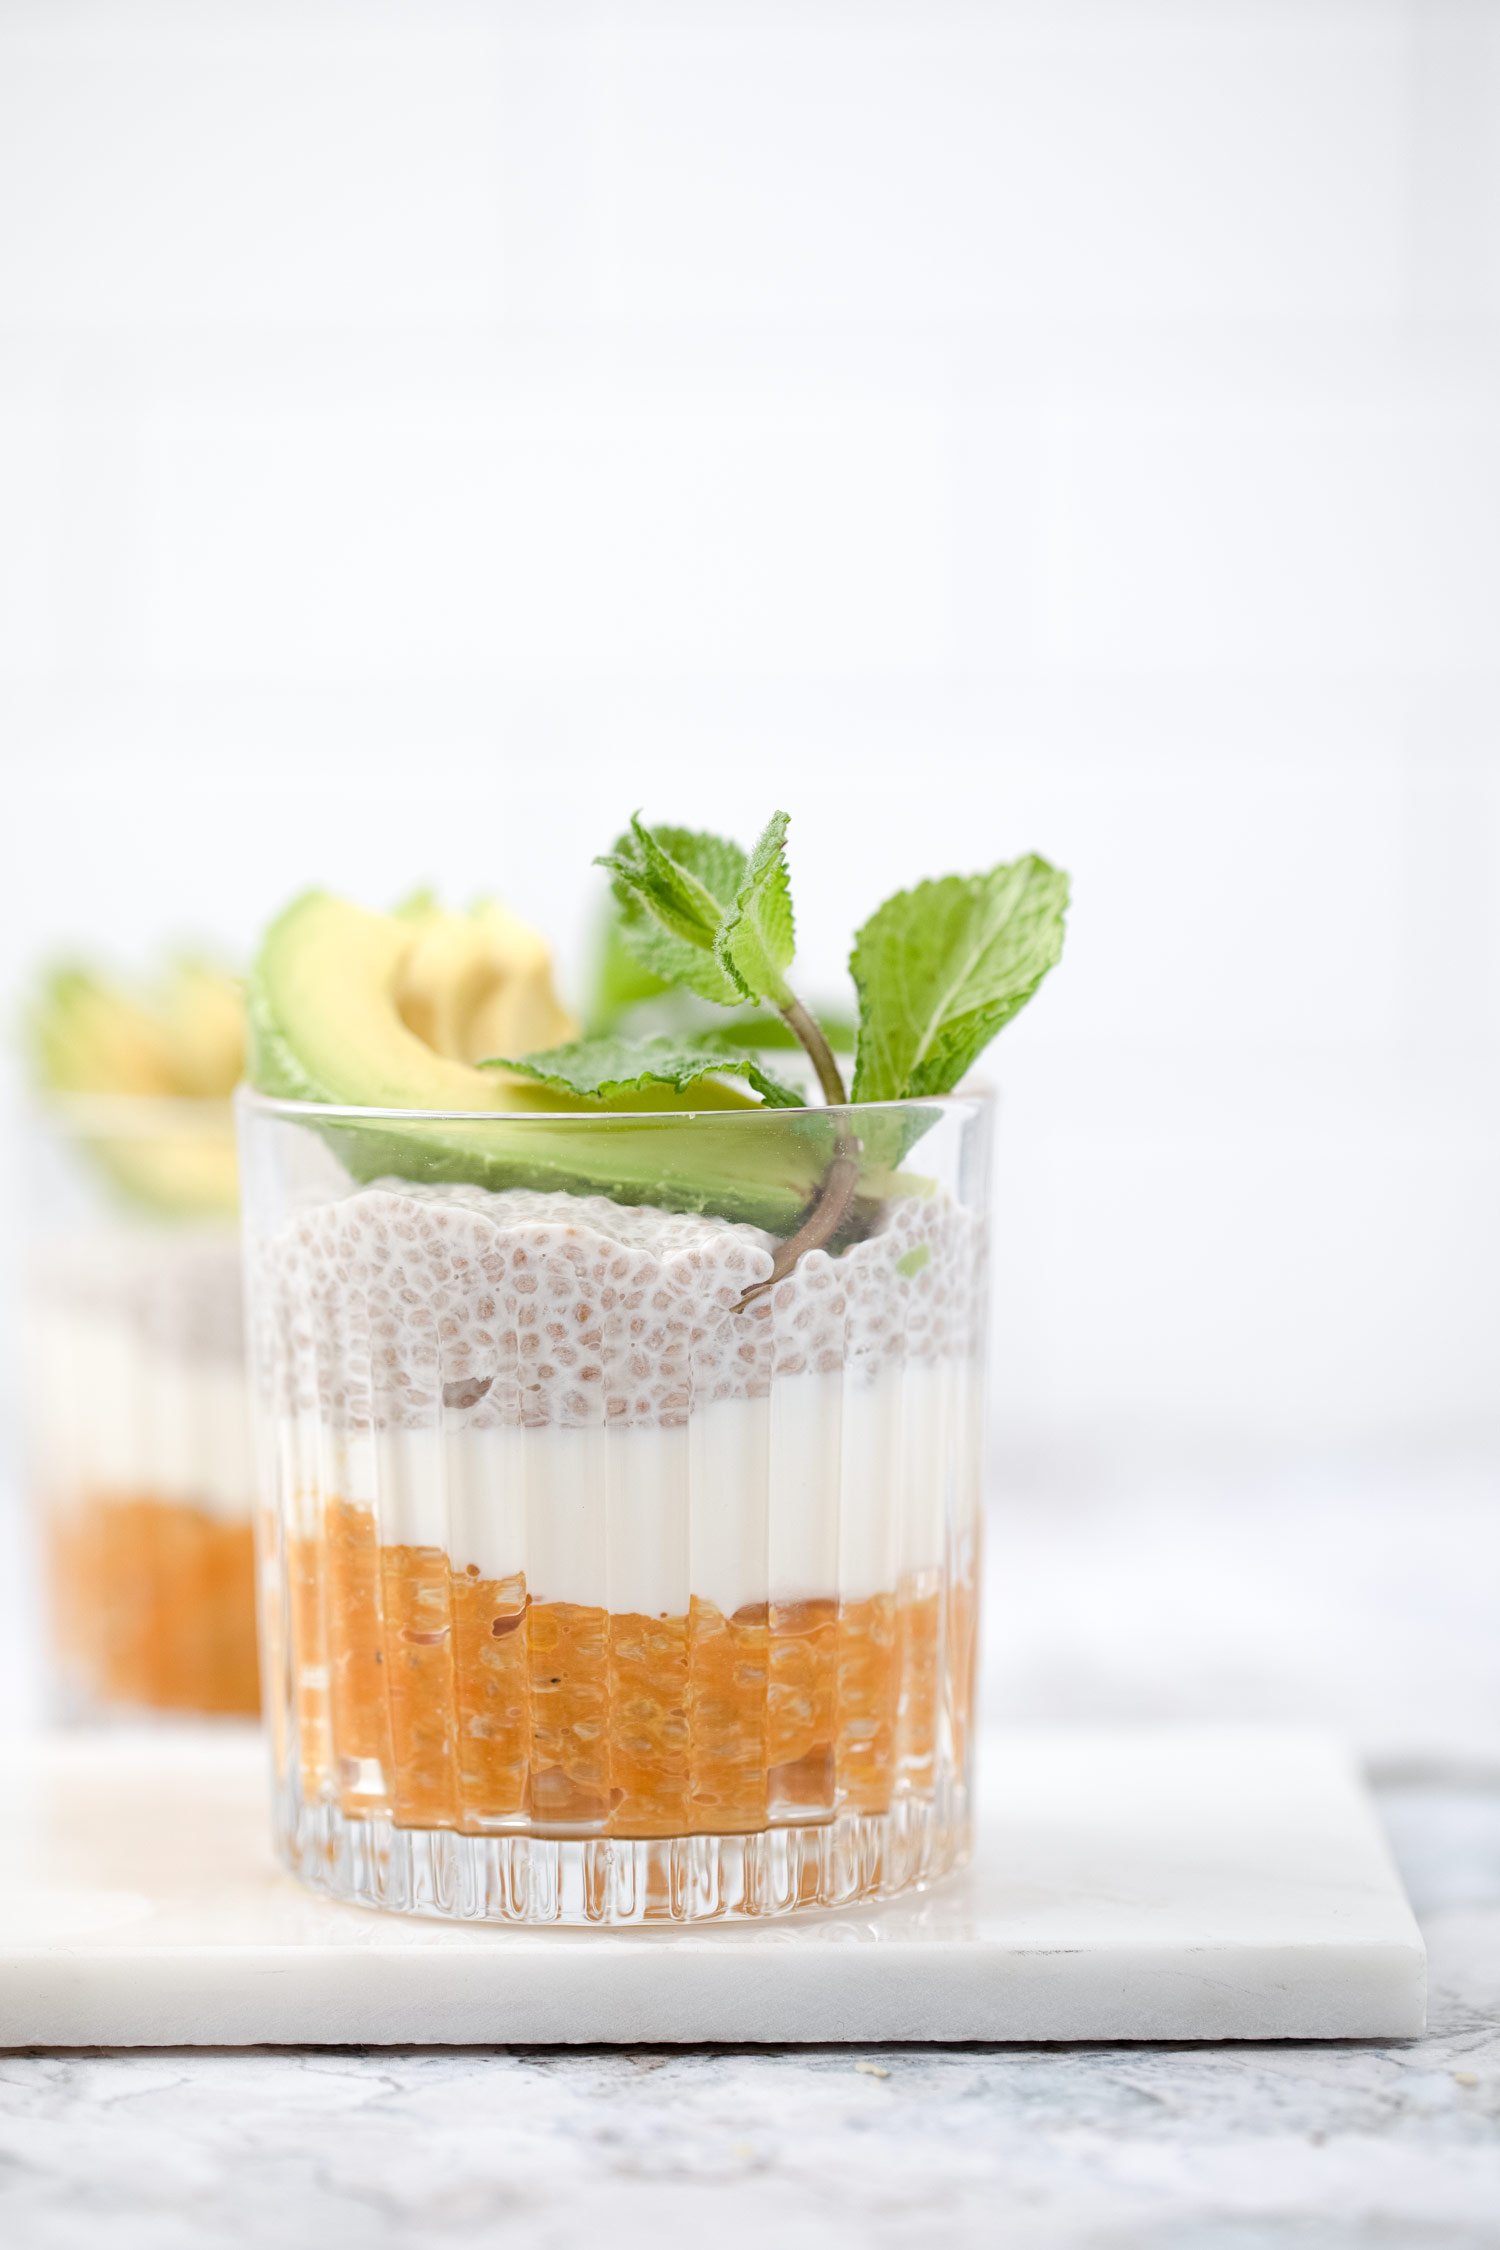 Miso-Flavored Savory White Chia Pudding by Bakd&Raw